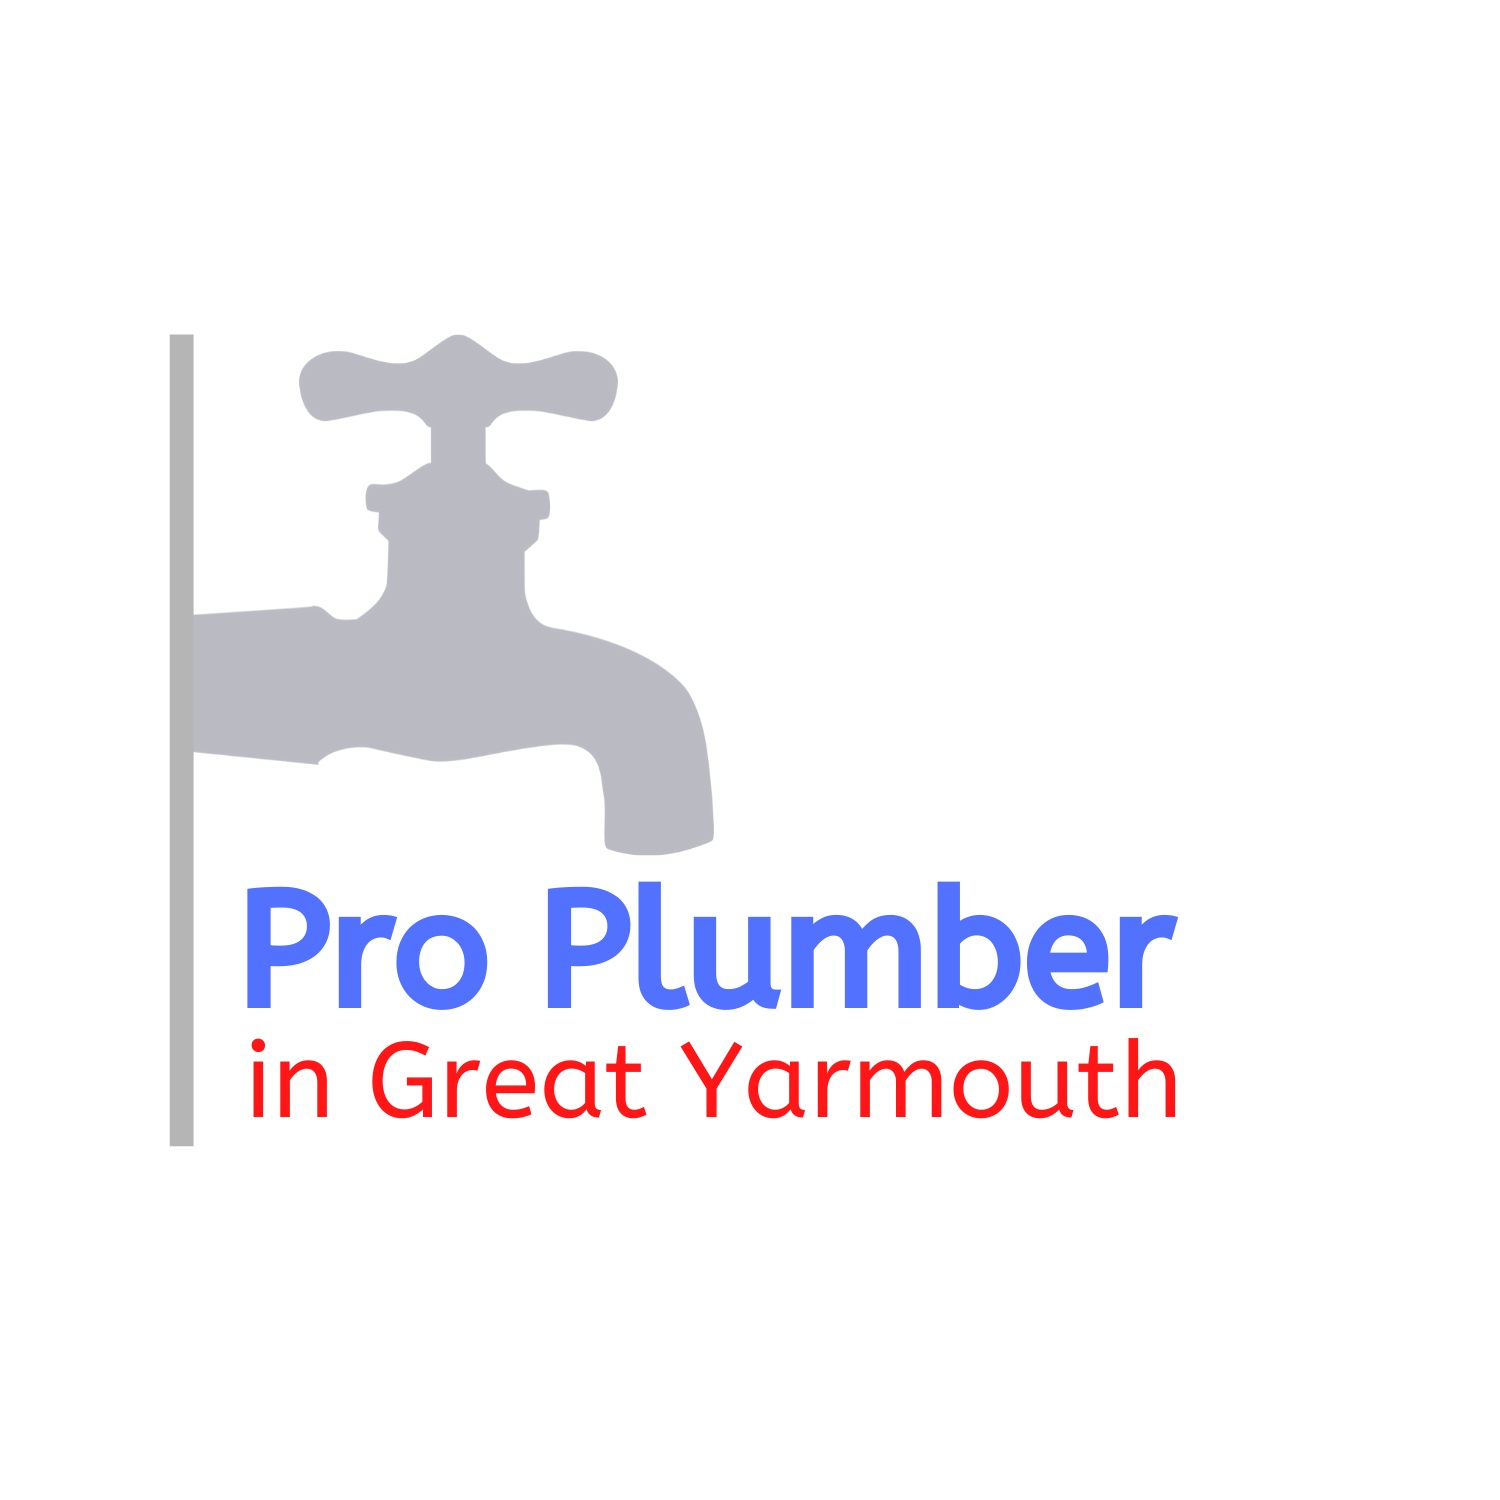 Logo of Pro Plumber in Great Yarmouth